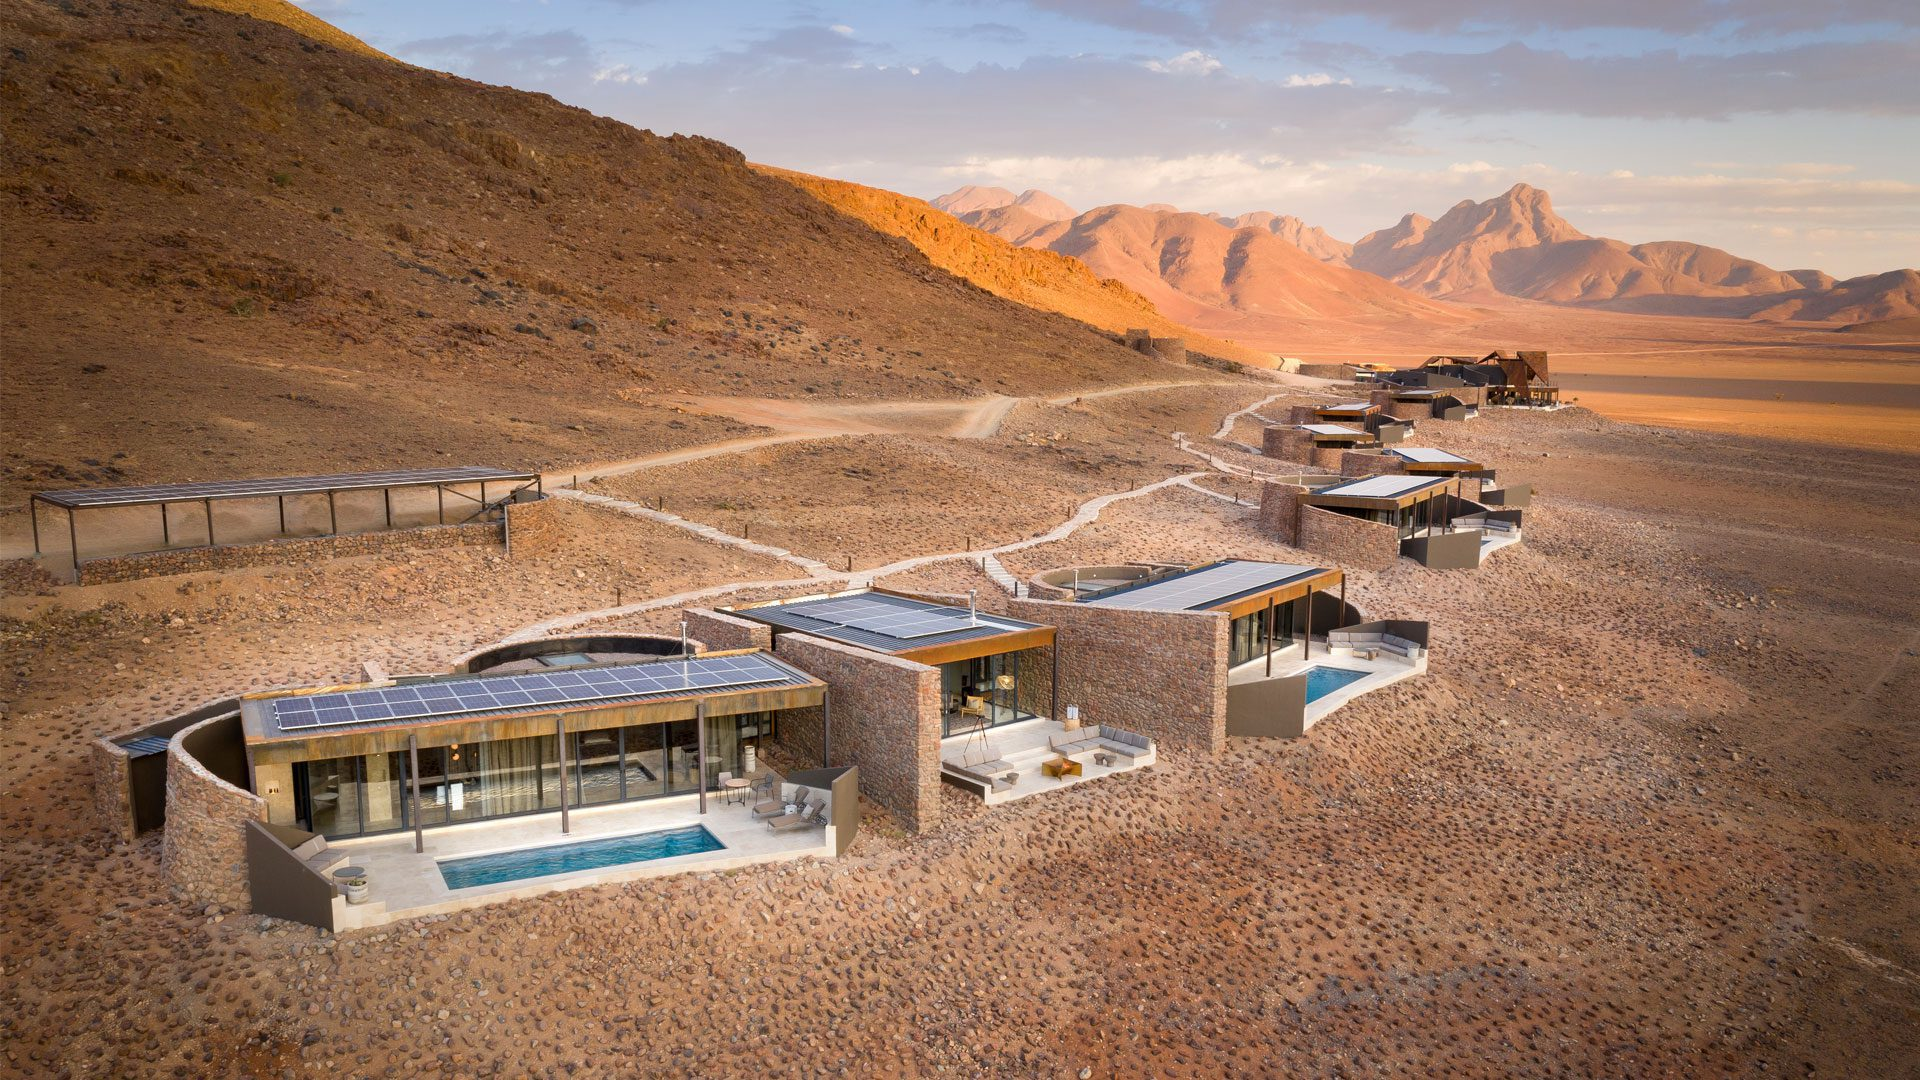 sprawling luxury lodge in the desert with swimming pools